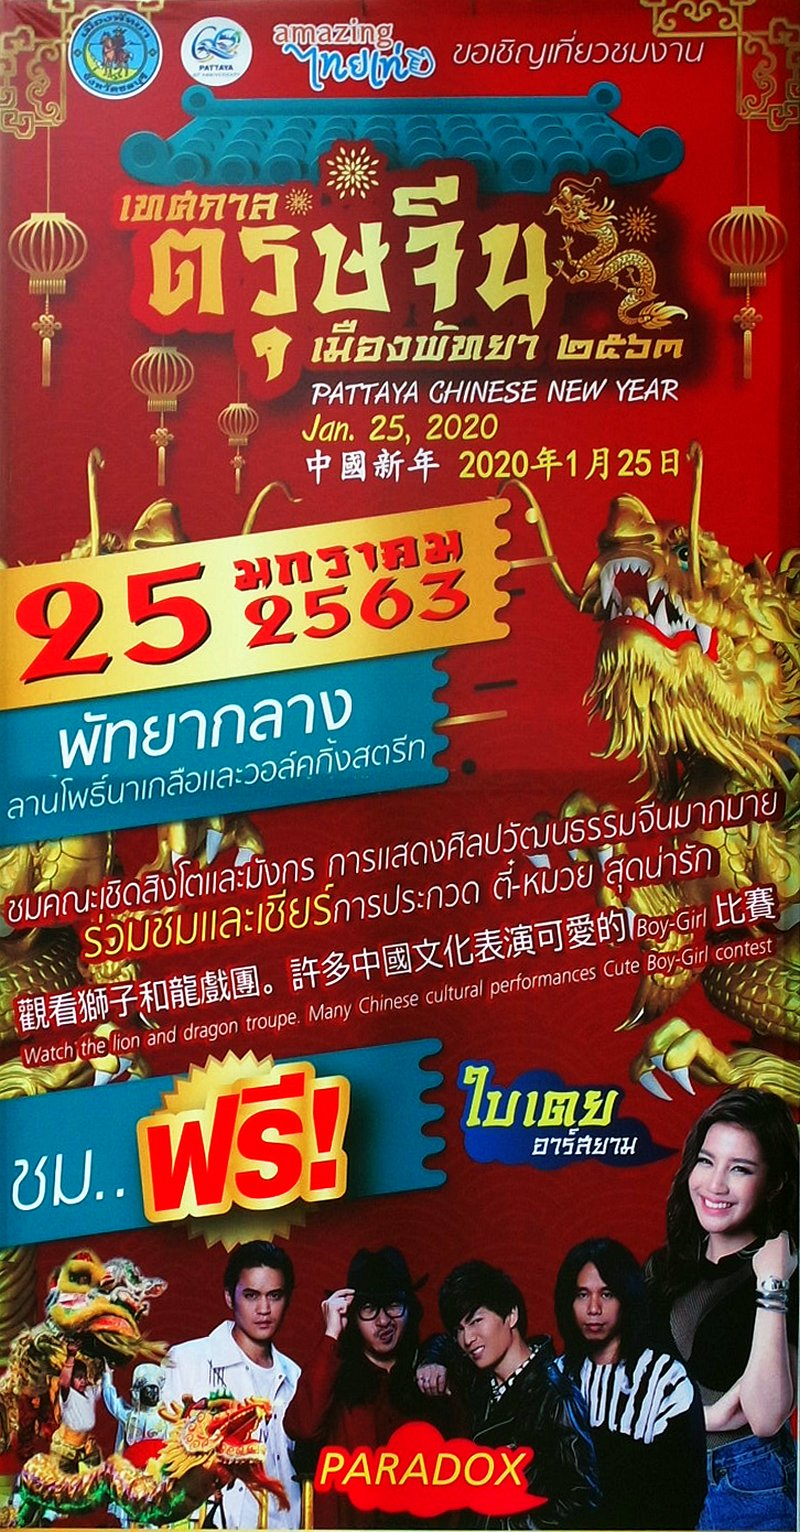 January 25th: Chinese New Year entertainment